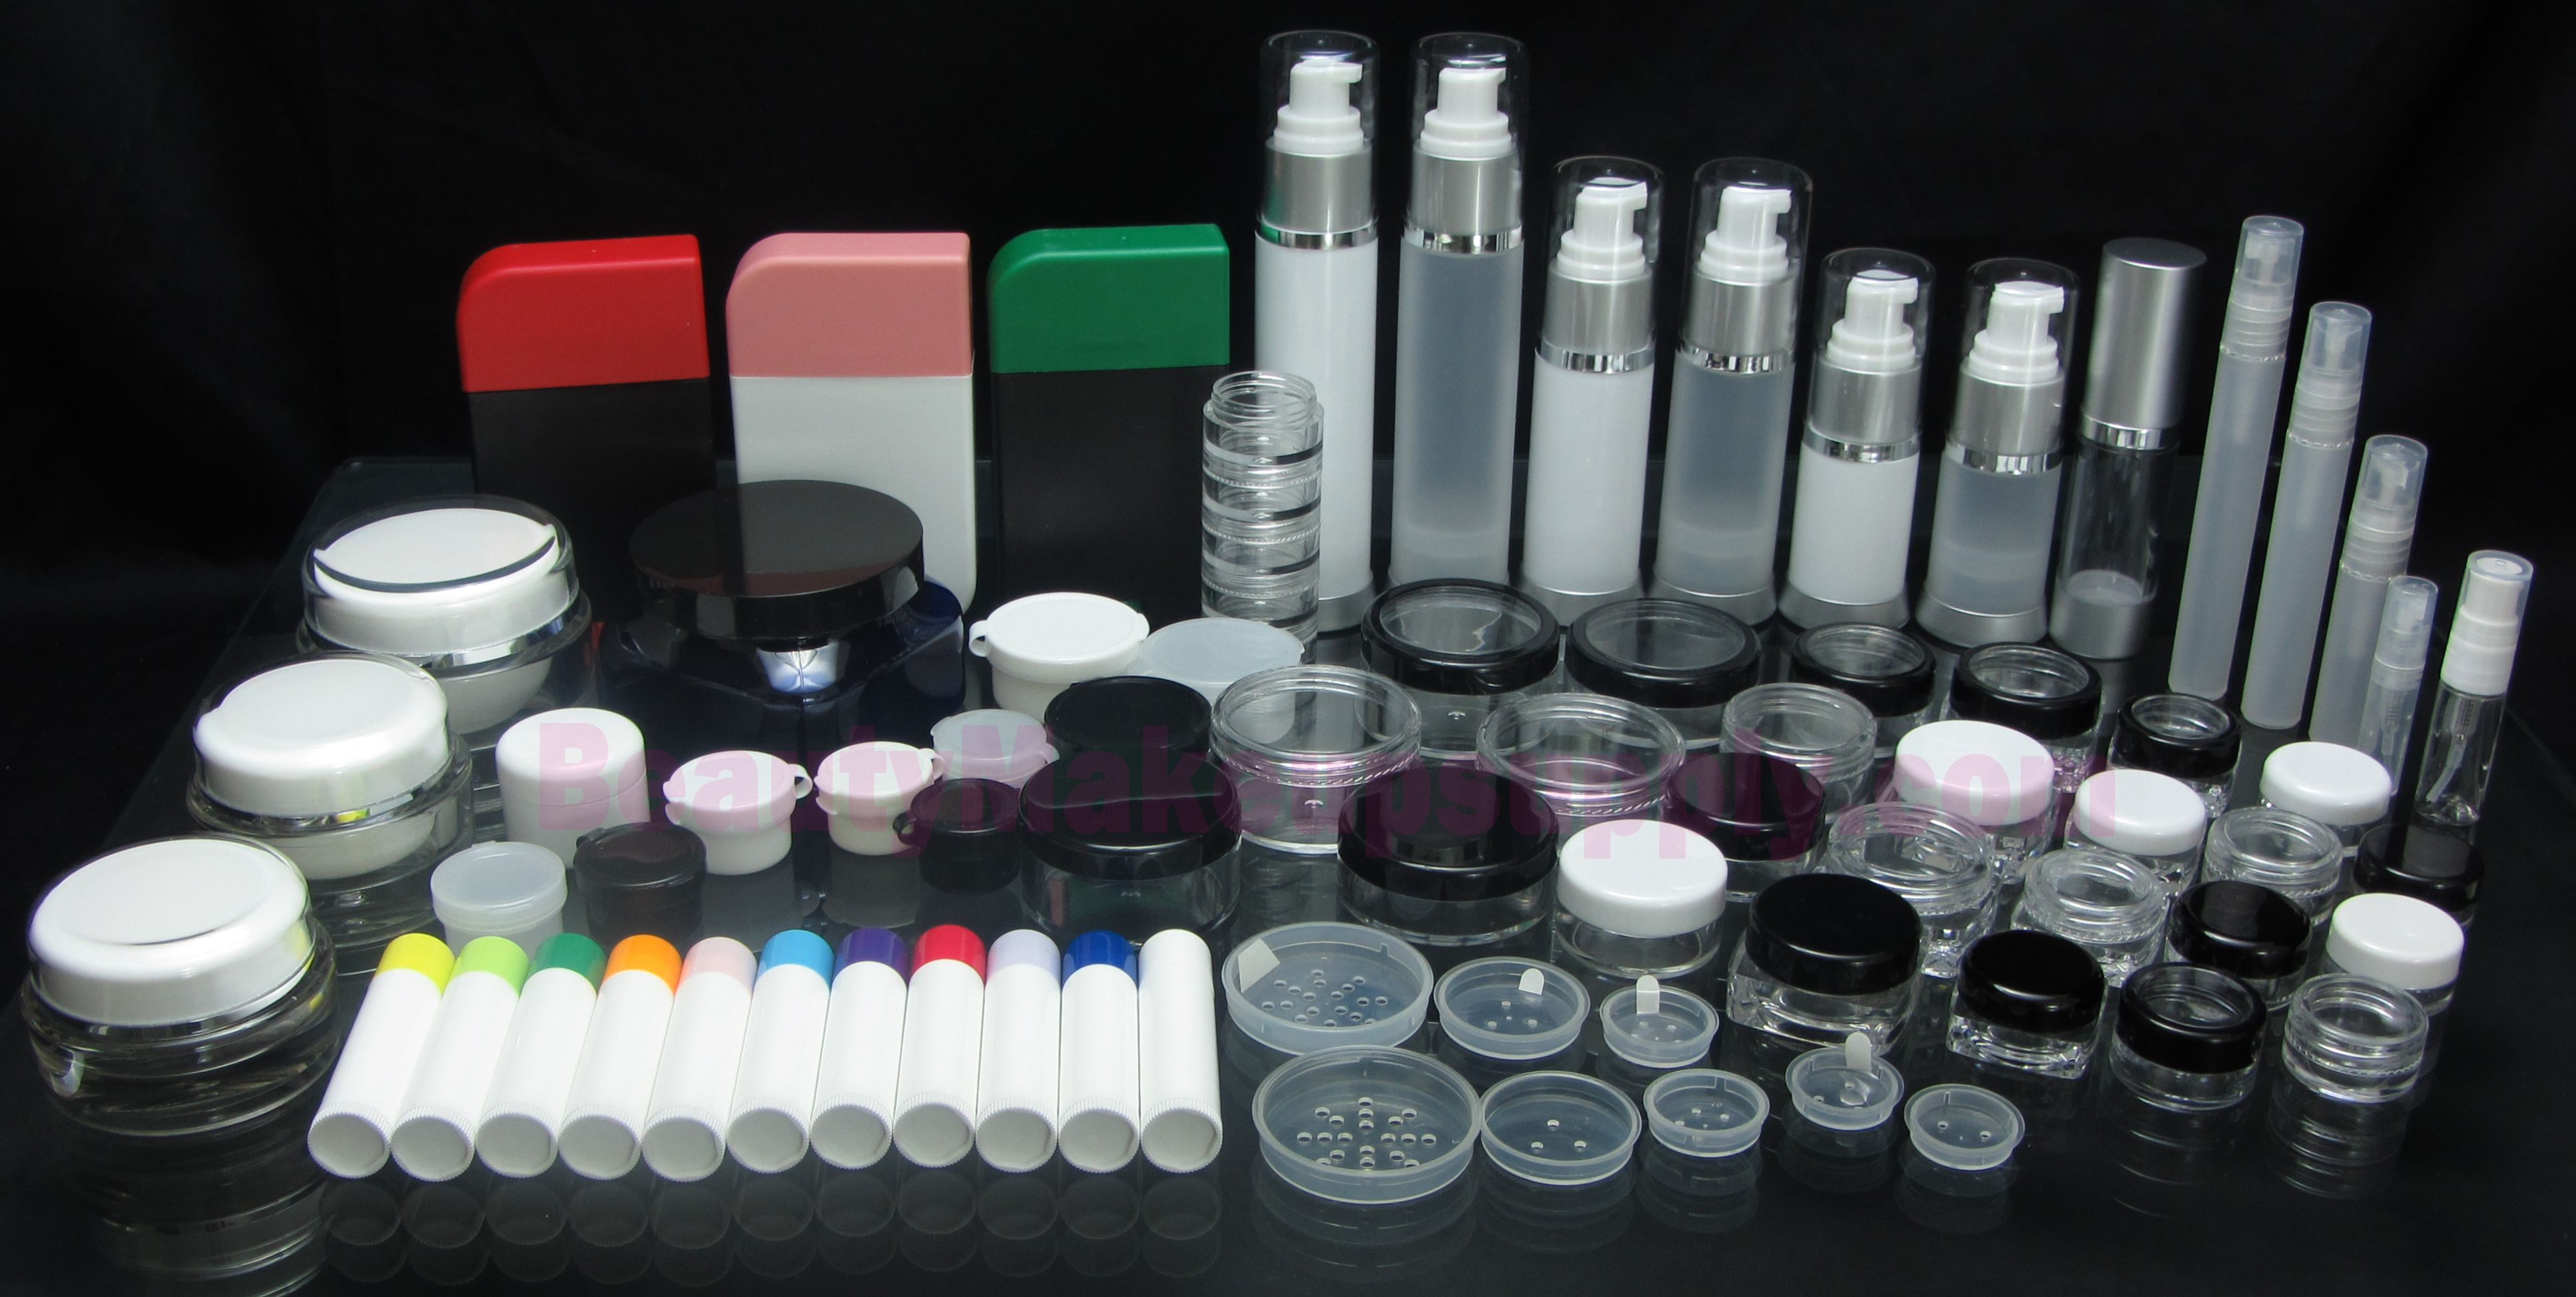 Wholesale Cosmetic Jars - Makeup Applicators - Acrylic Organizers